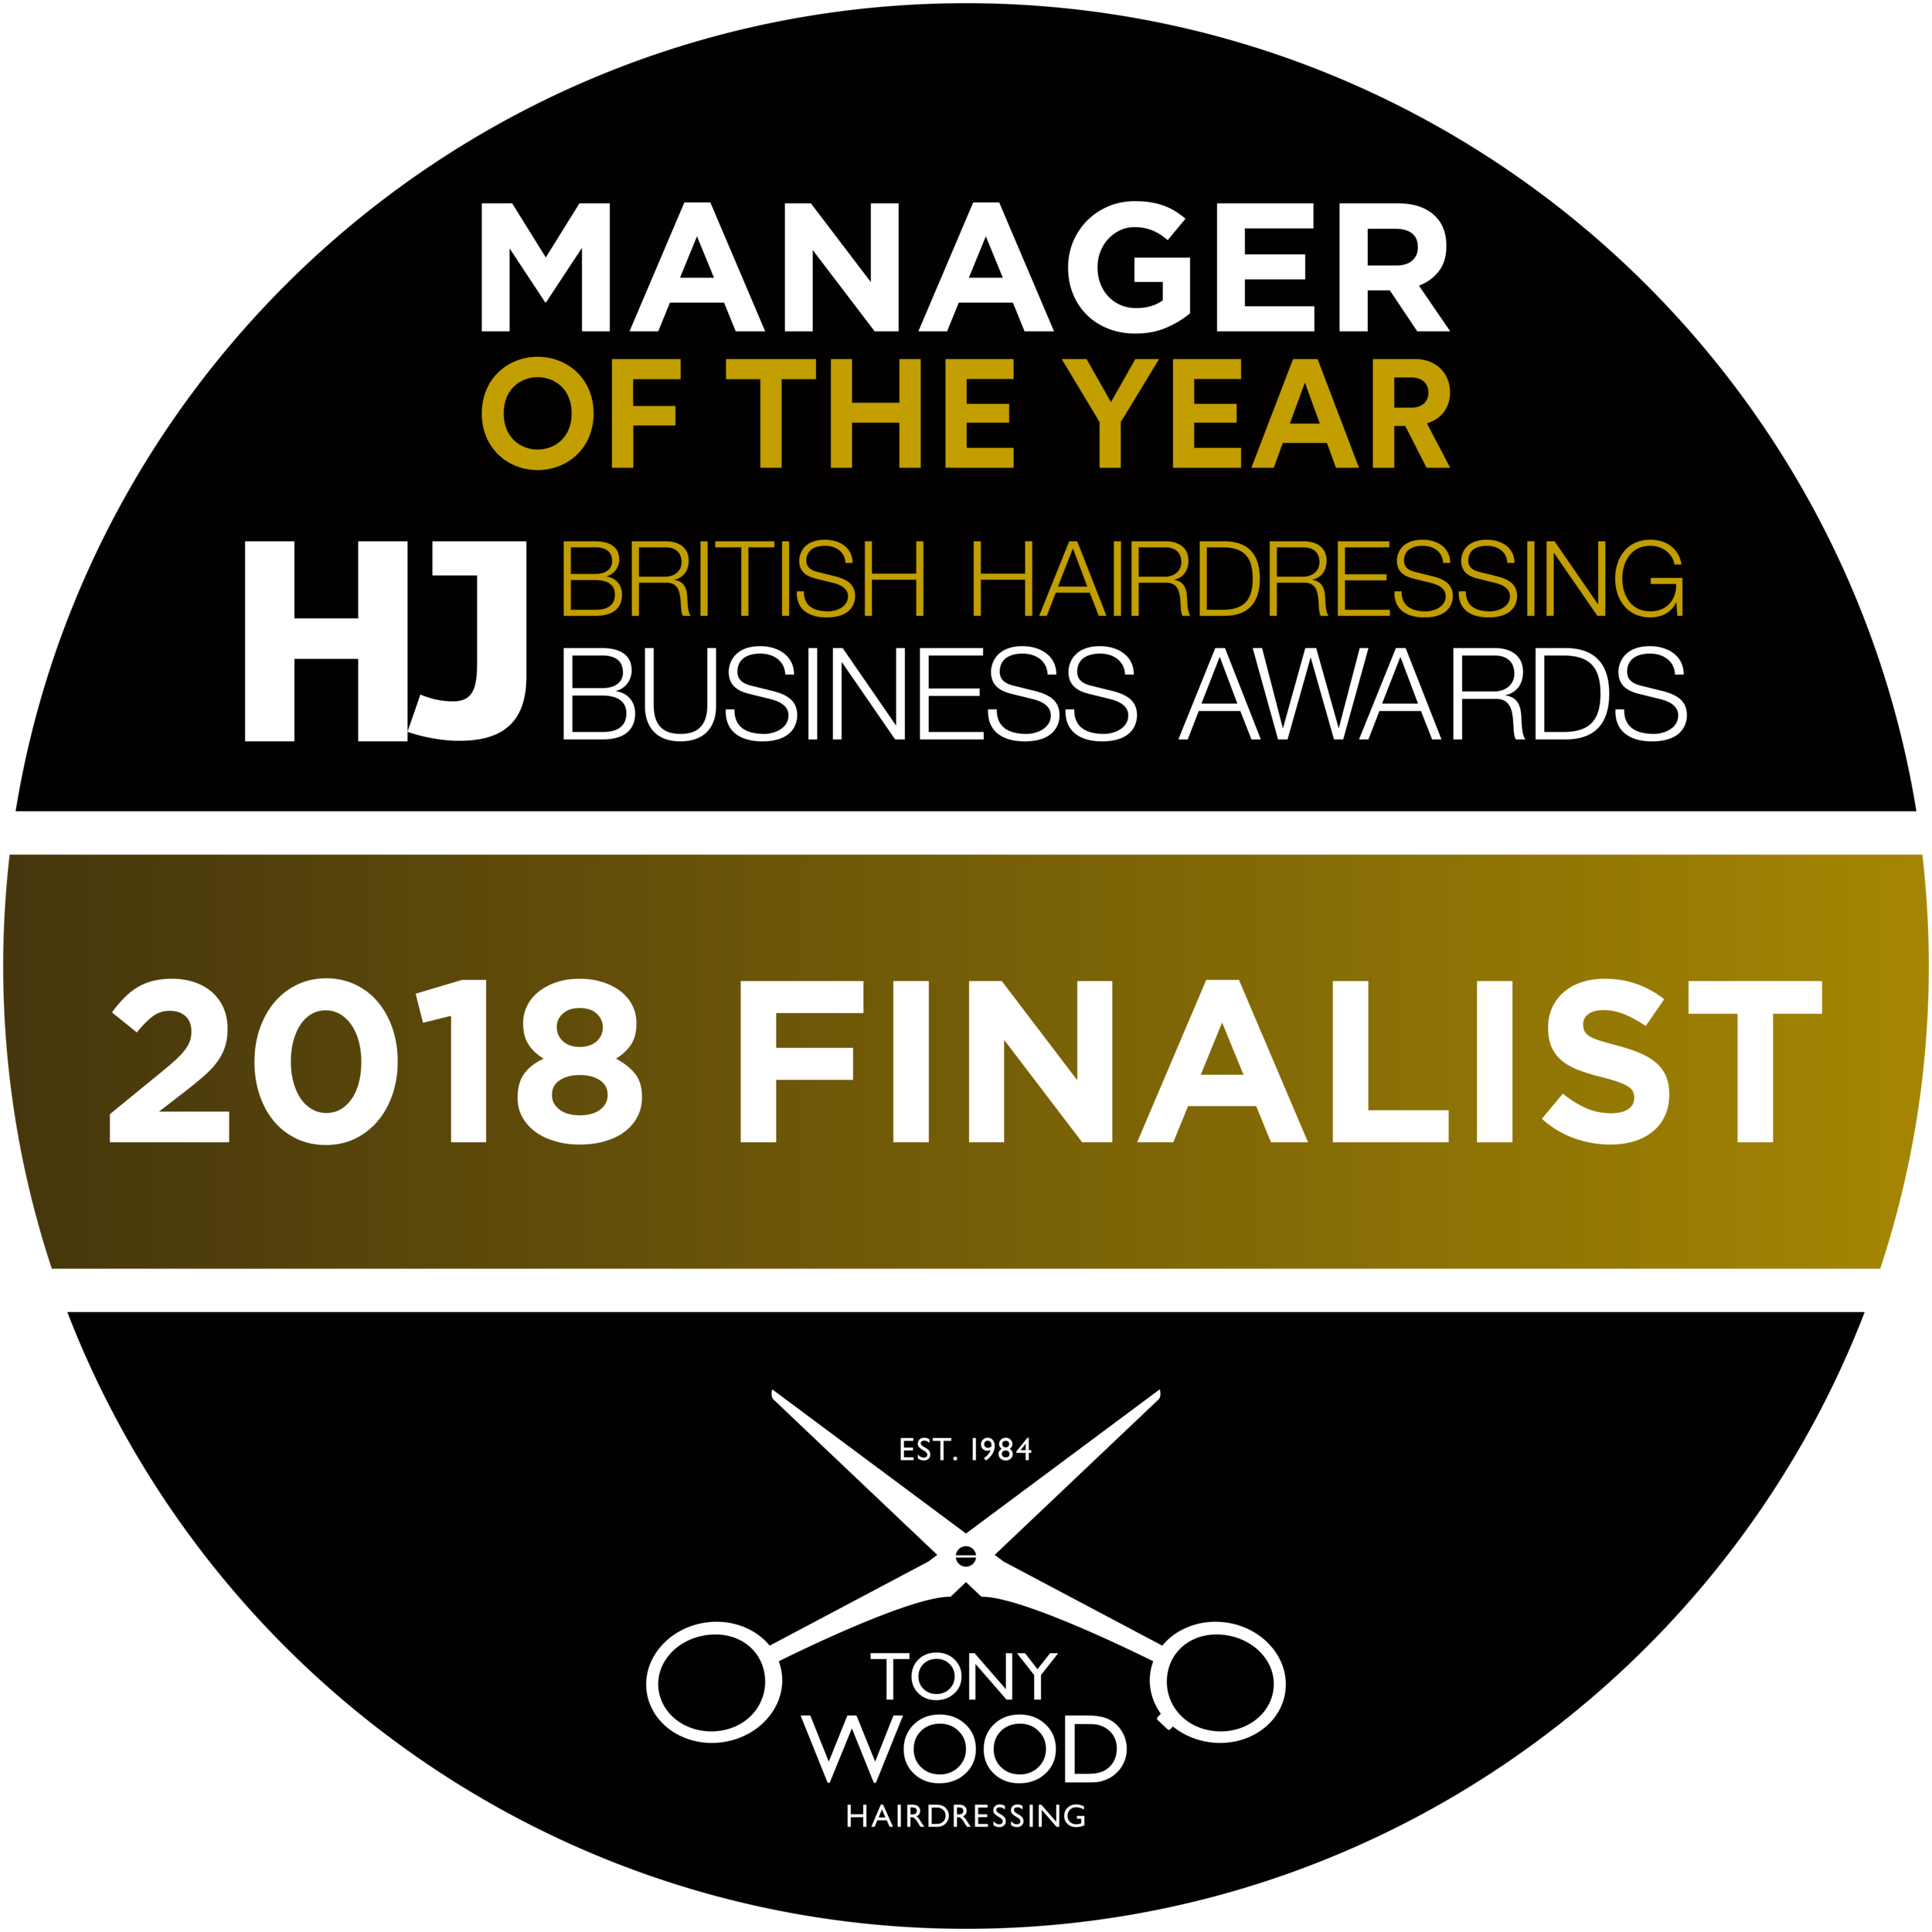 Manager of the Year Finalist Tony Wood Hairdressers Journal.png